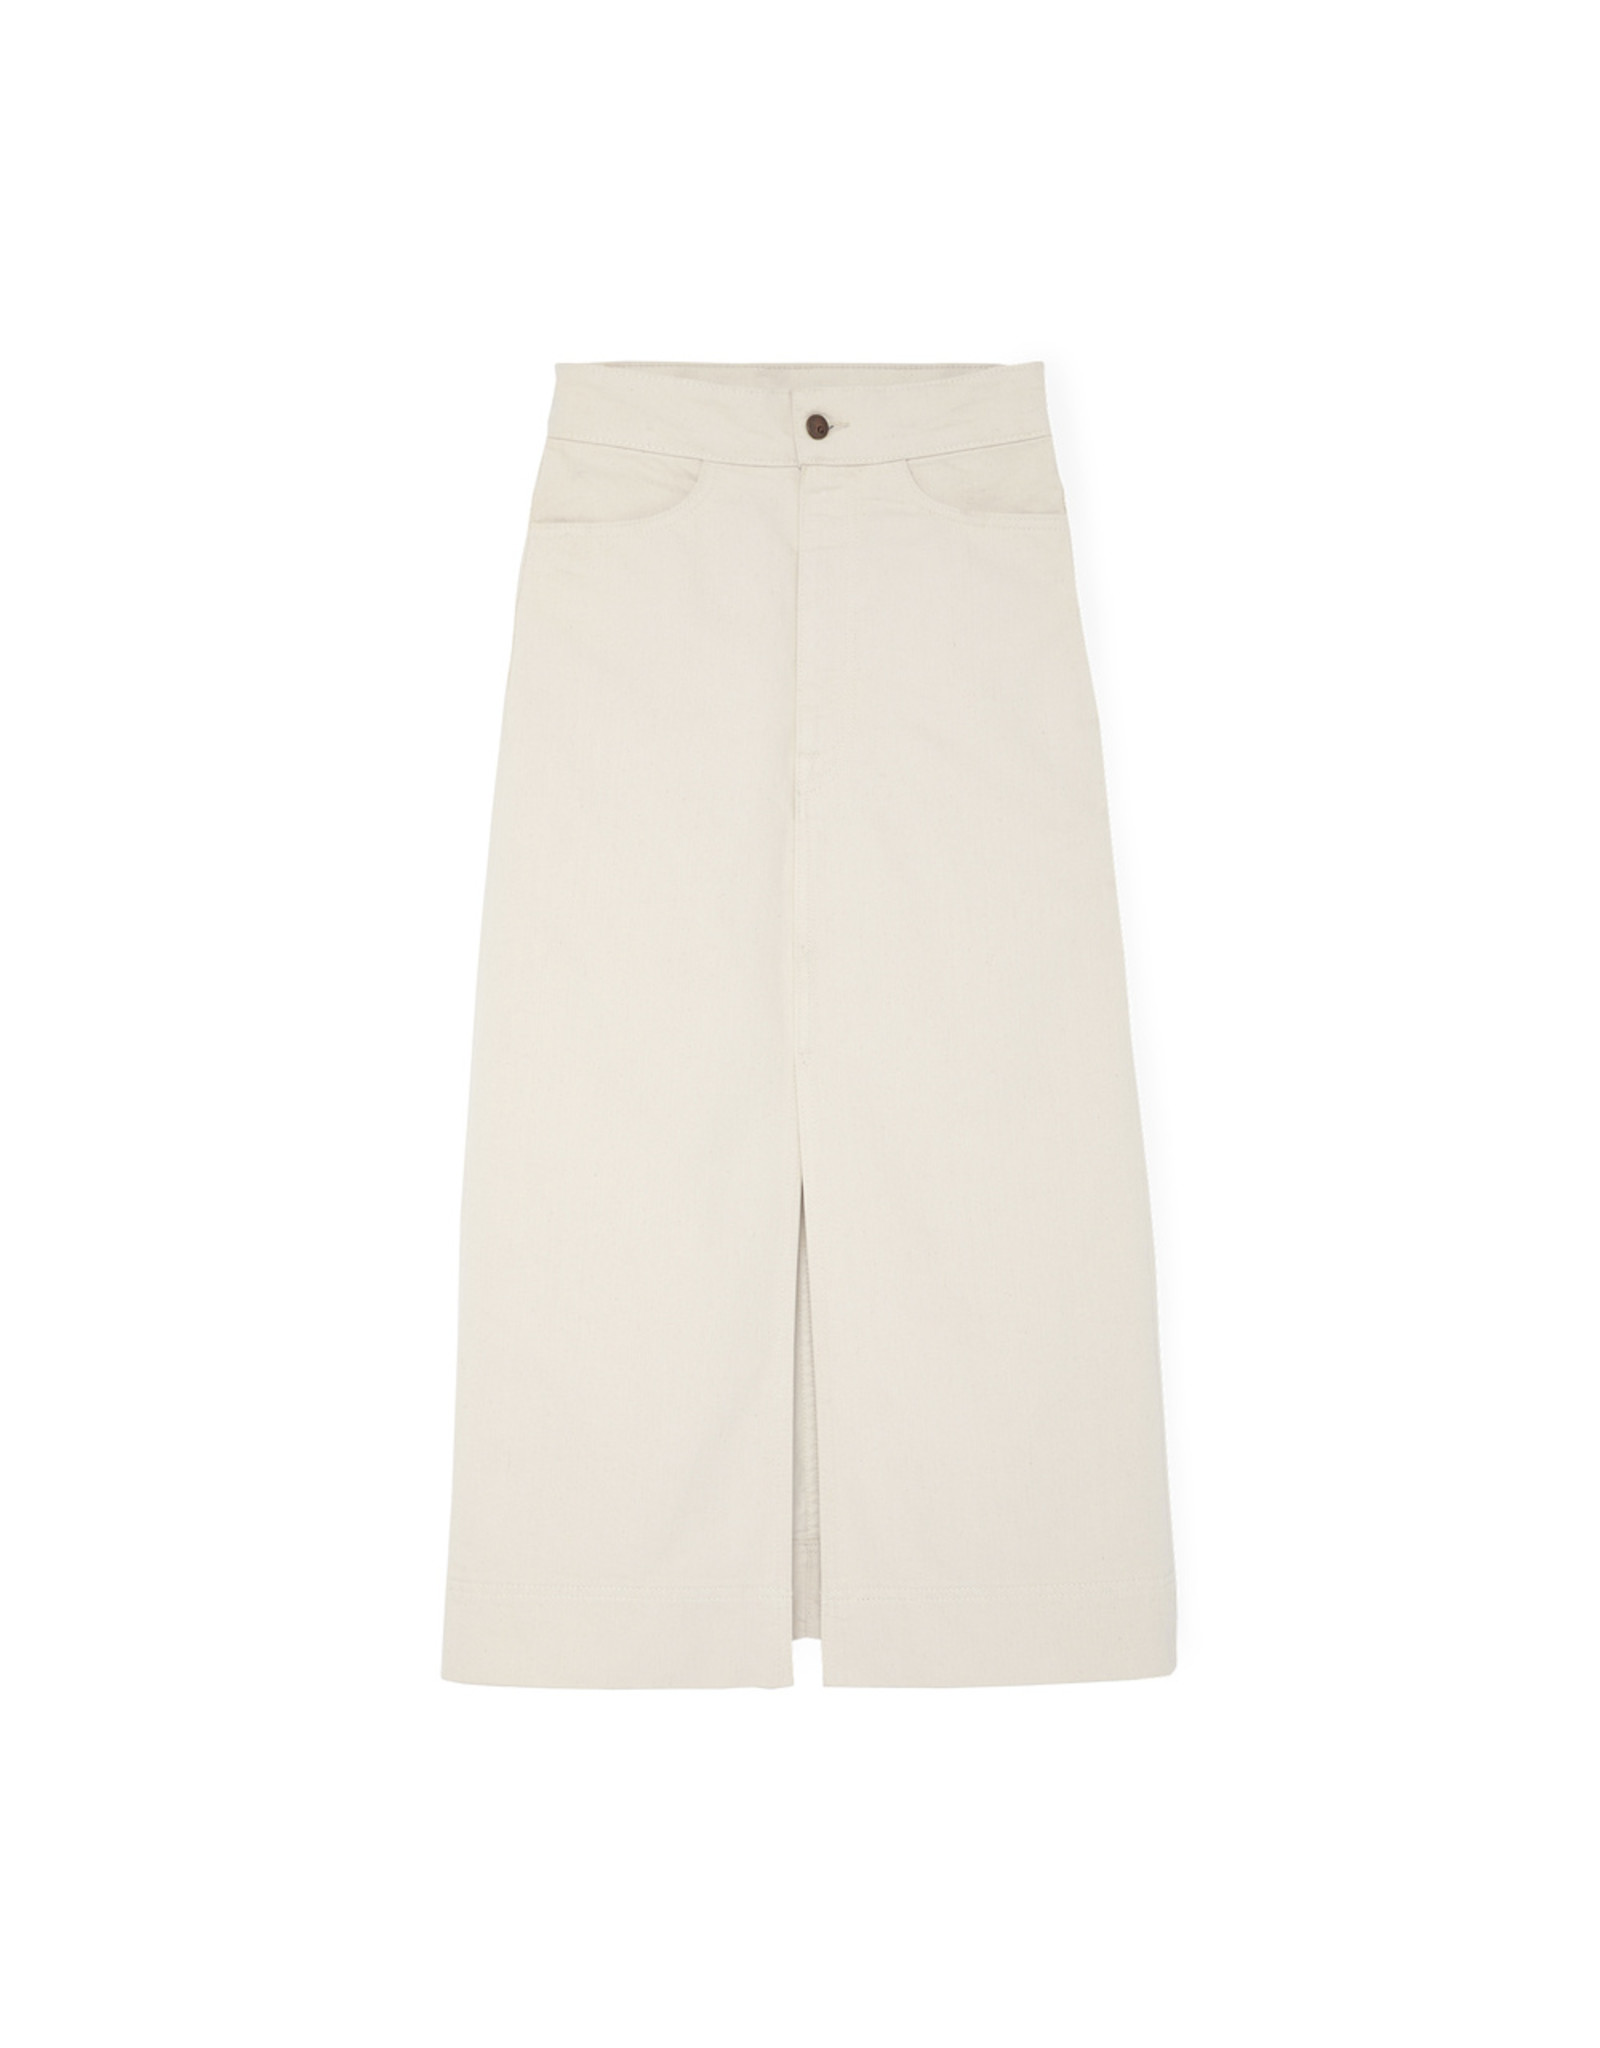 G. Label G. Label Yu Denim Pencil Skirt (Size: 24, Color: Natural)